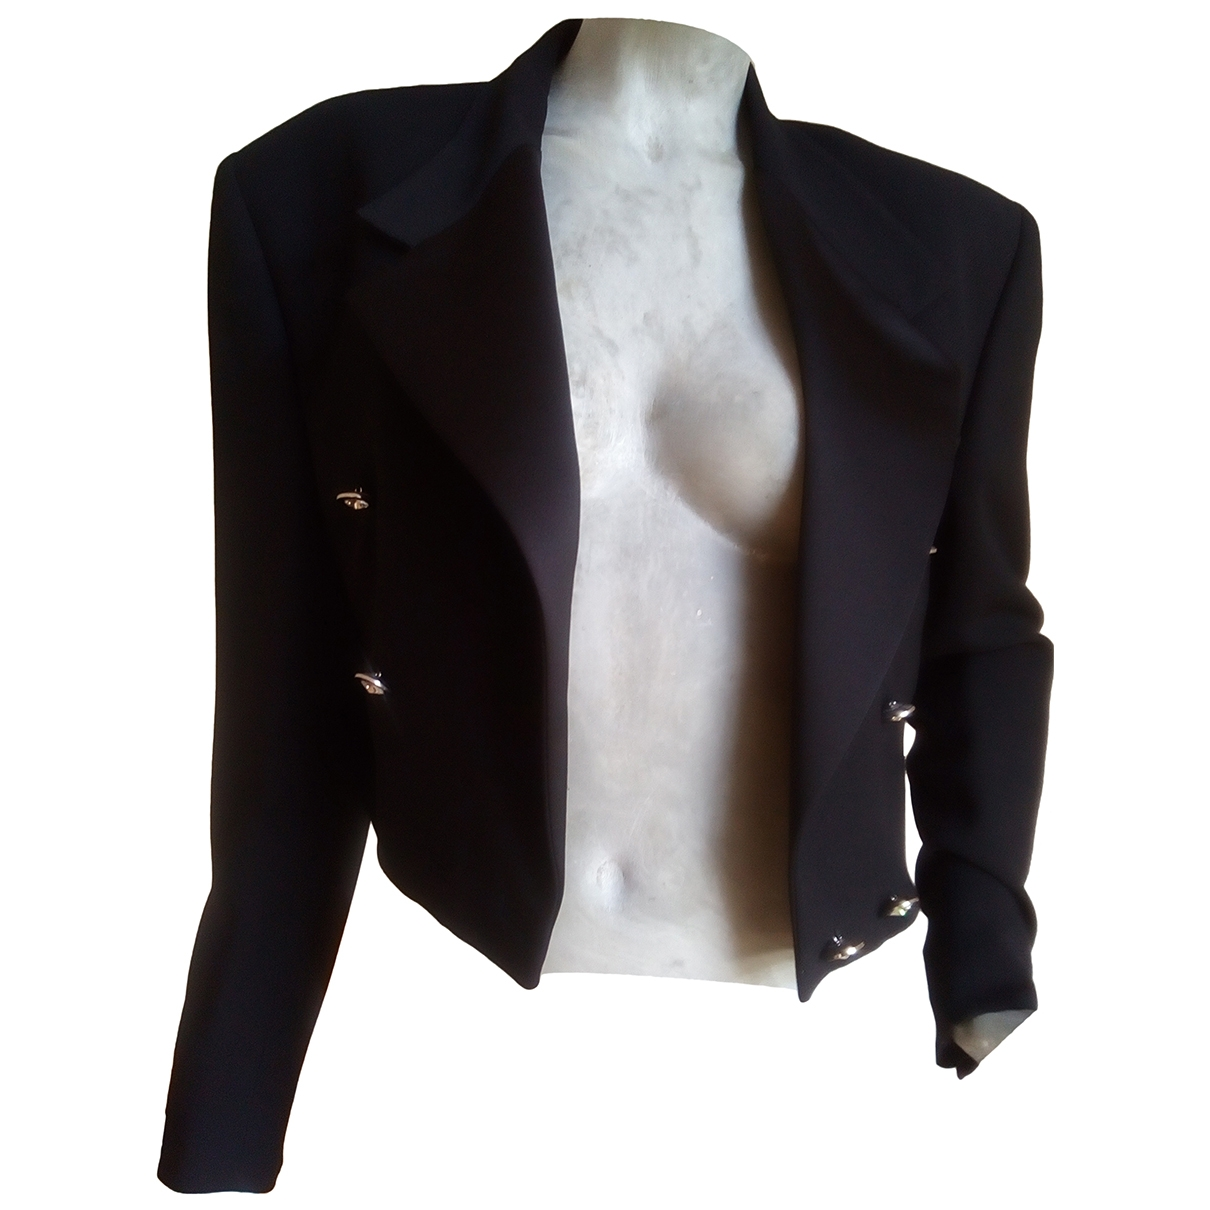 Gianni Versace \N Black Wool jacket for Women 42 IT